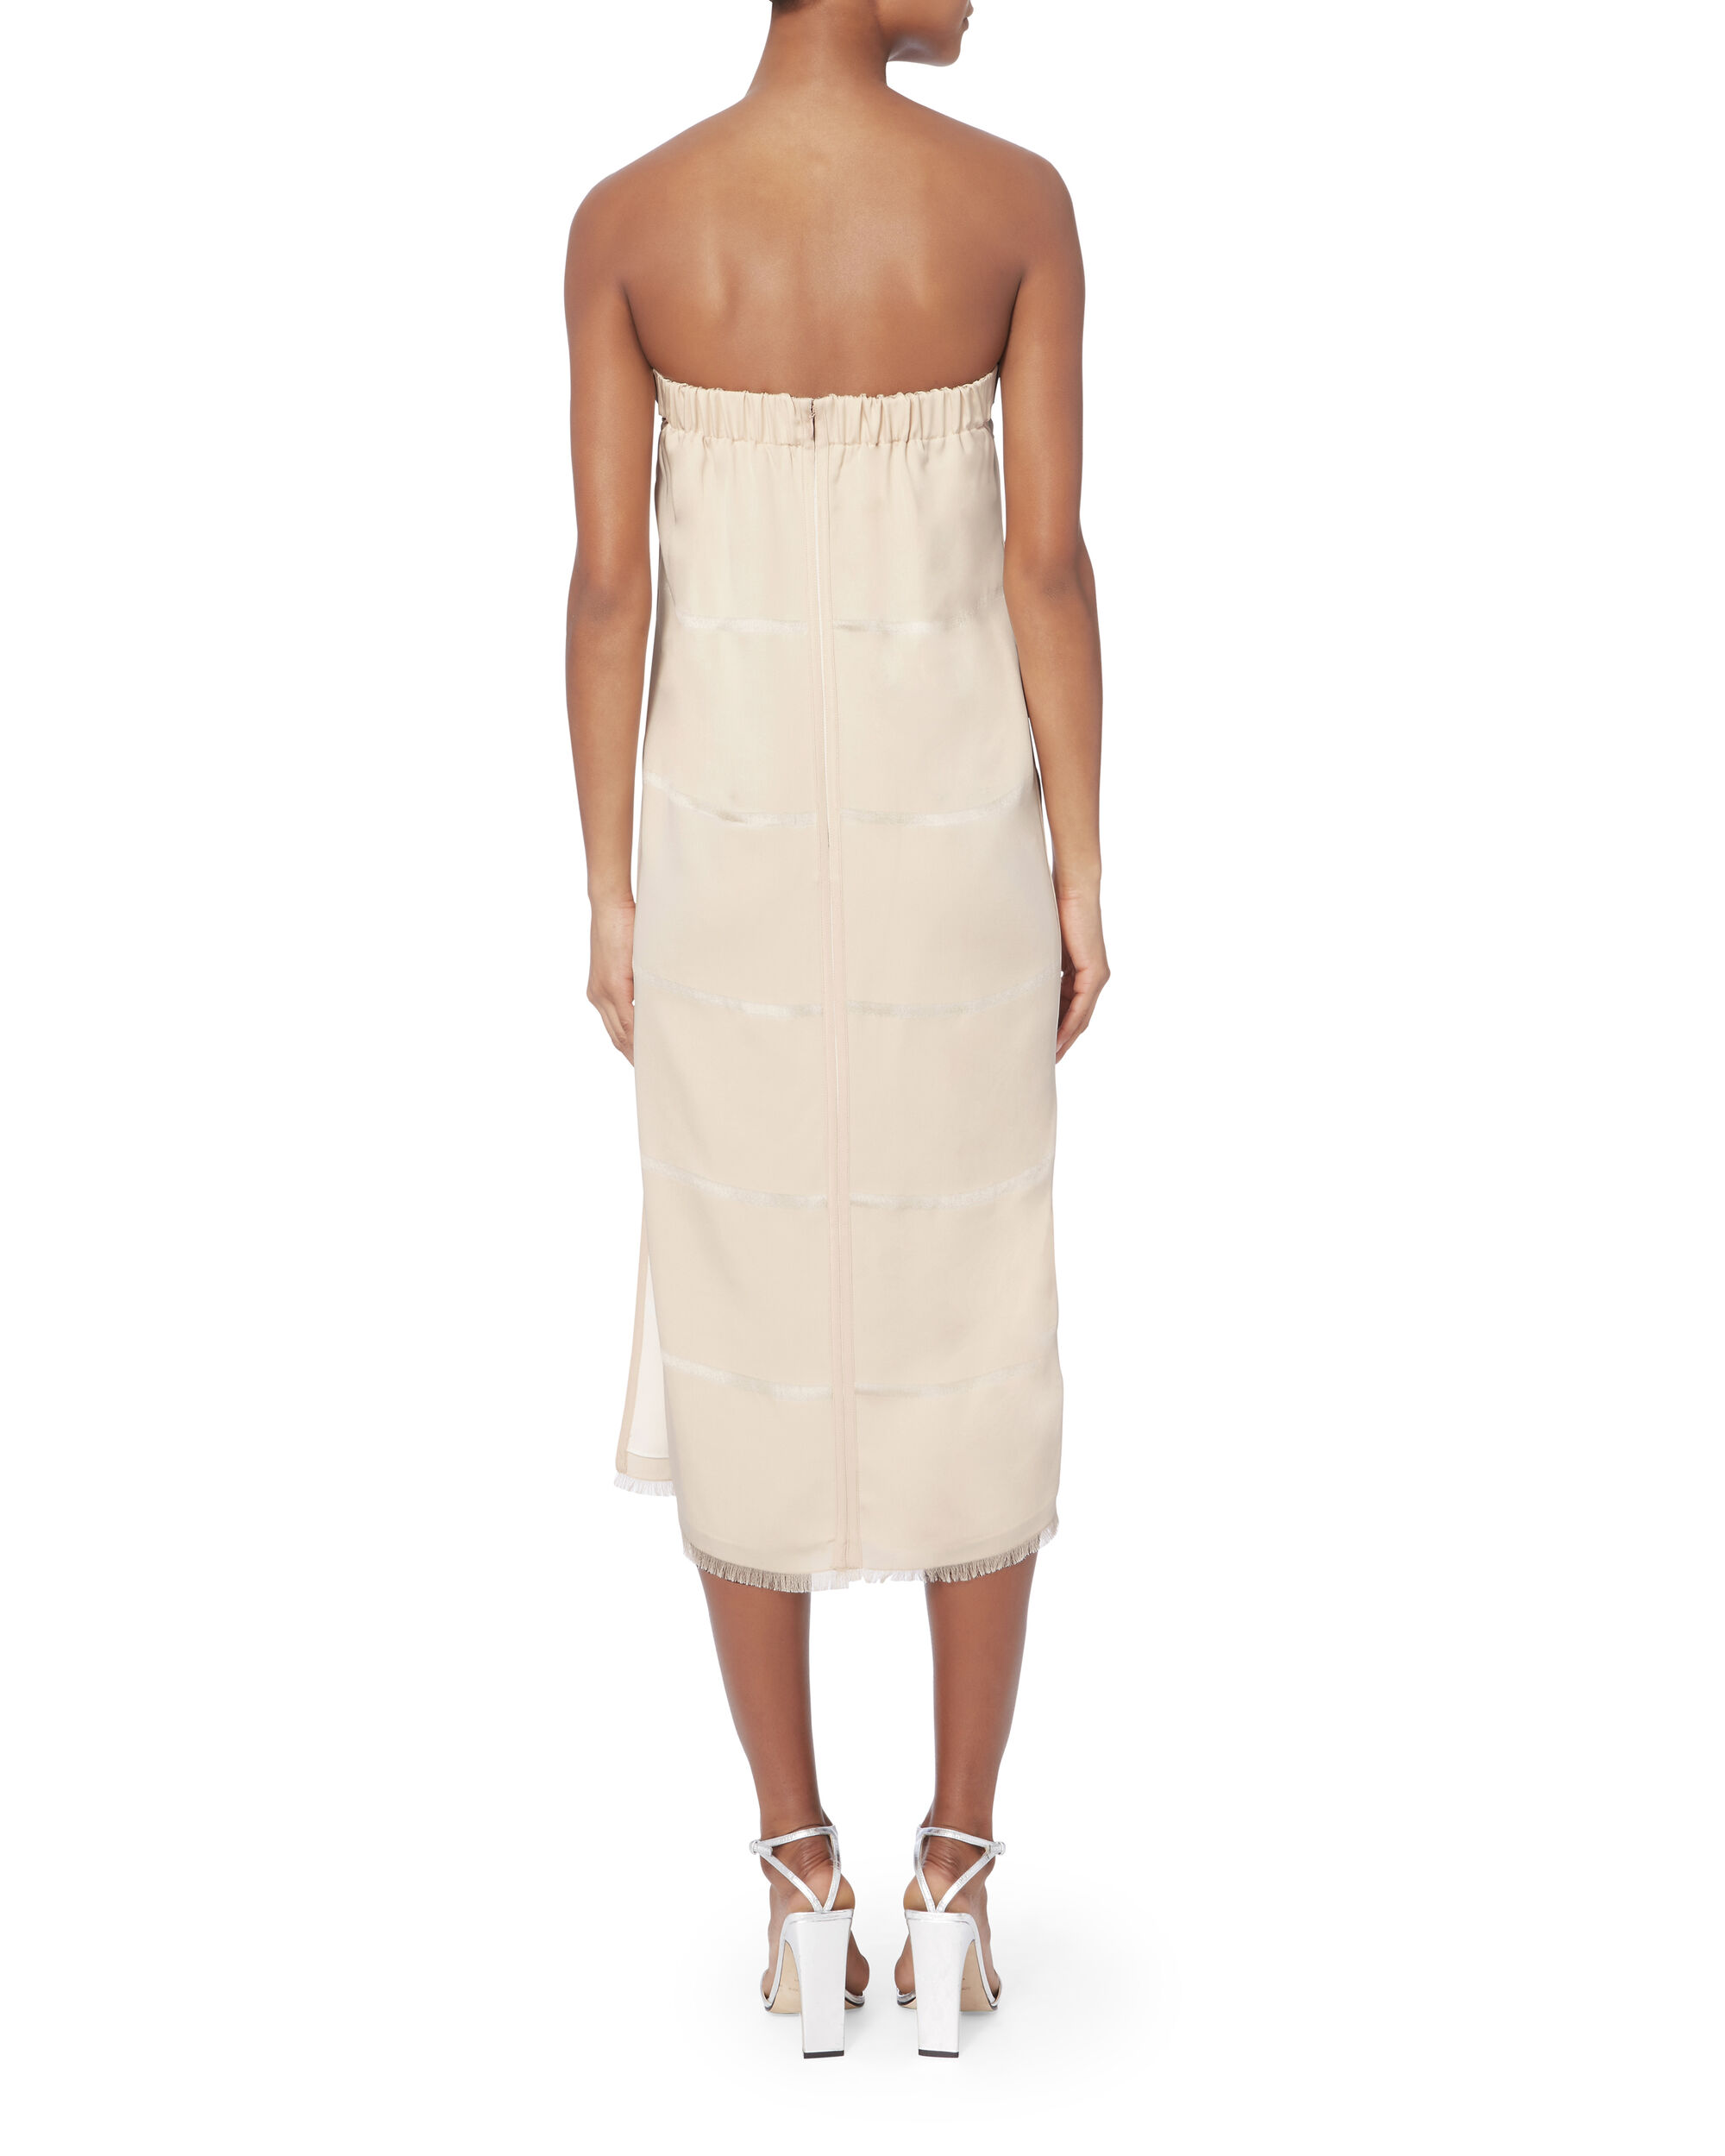 Clarence Strapless Dress, BLUSH/NUDE, hi-res